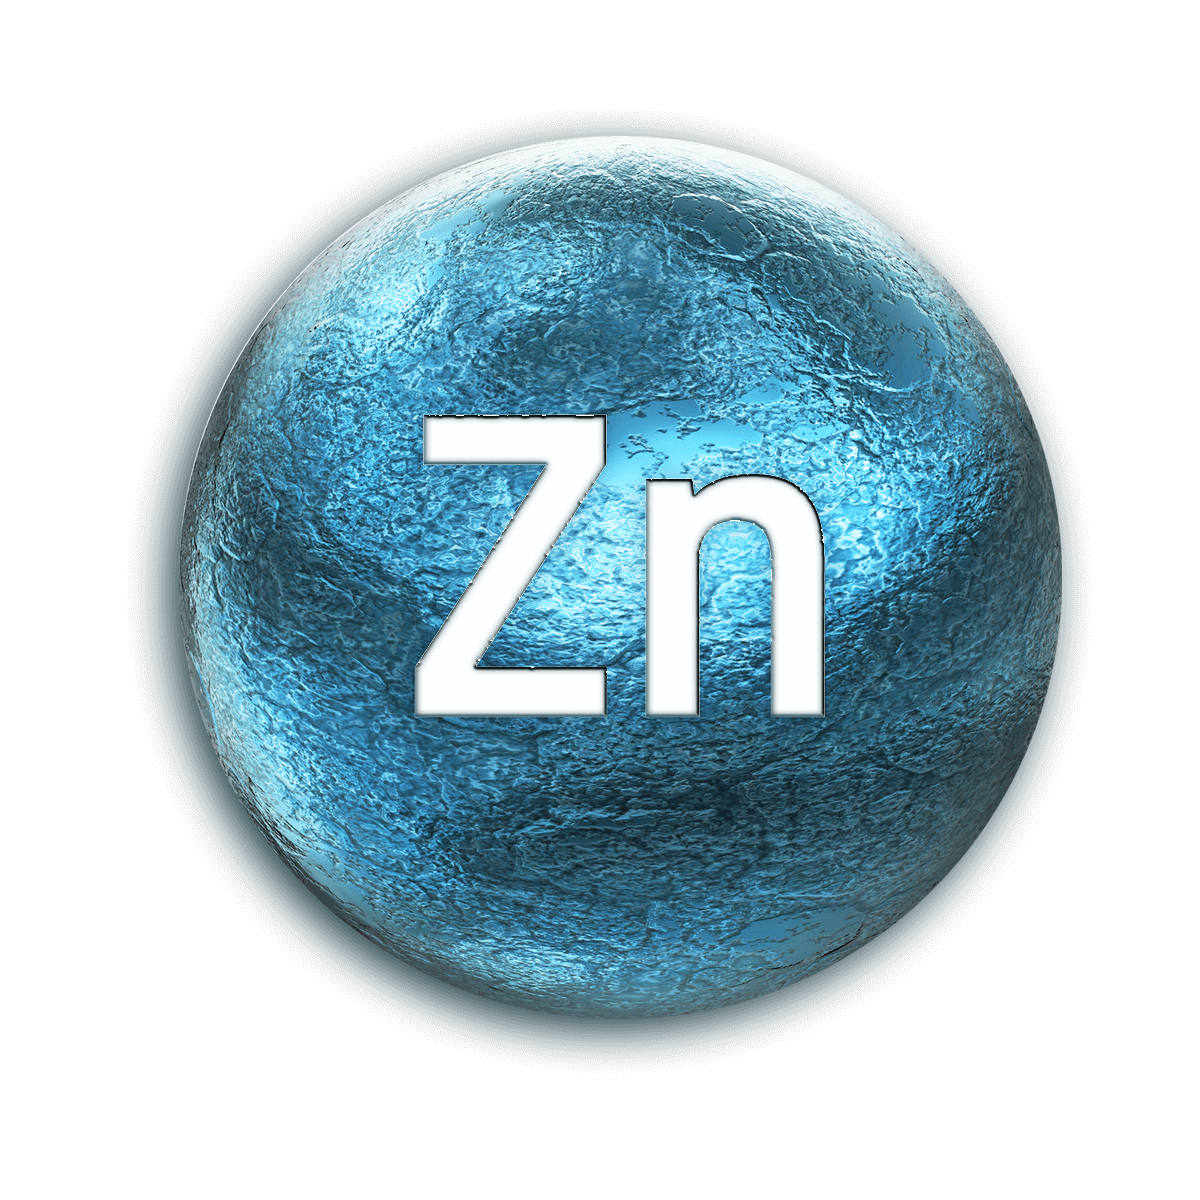 Metallic blue ball with periodic table chemical element symbol for Zinc.